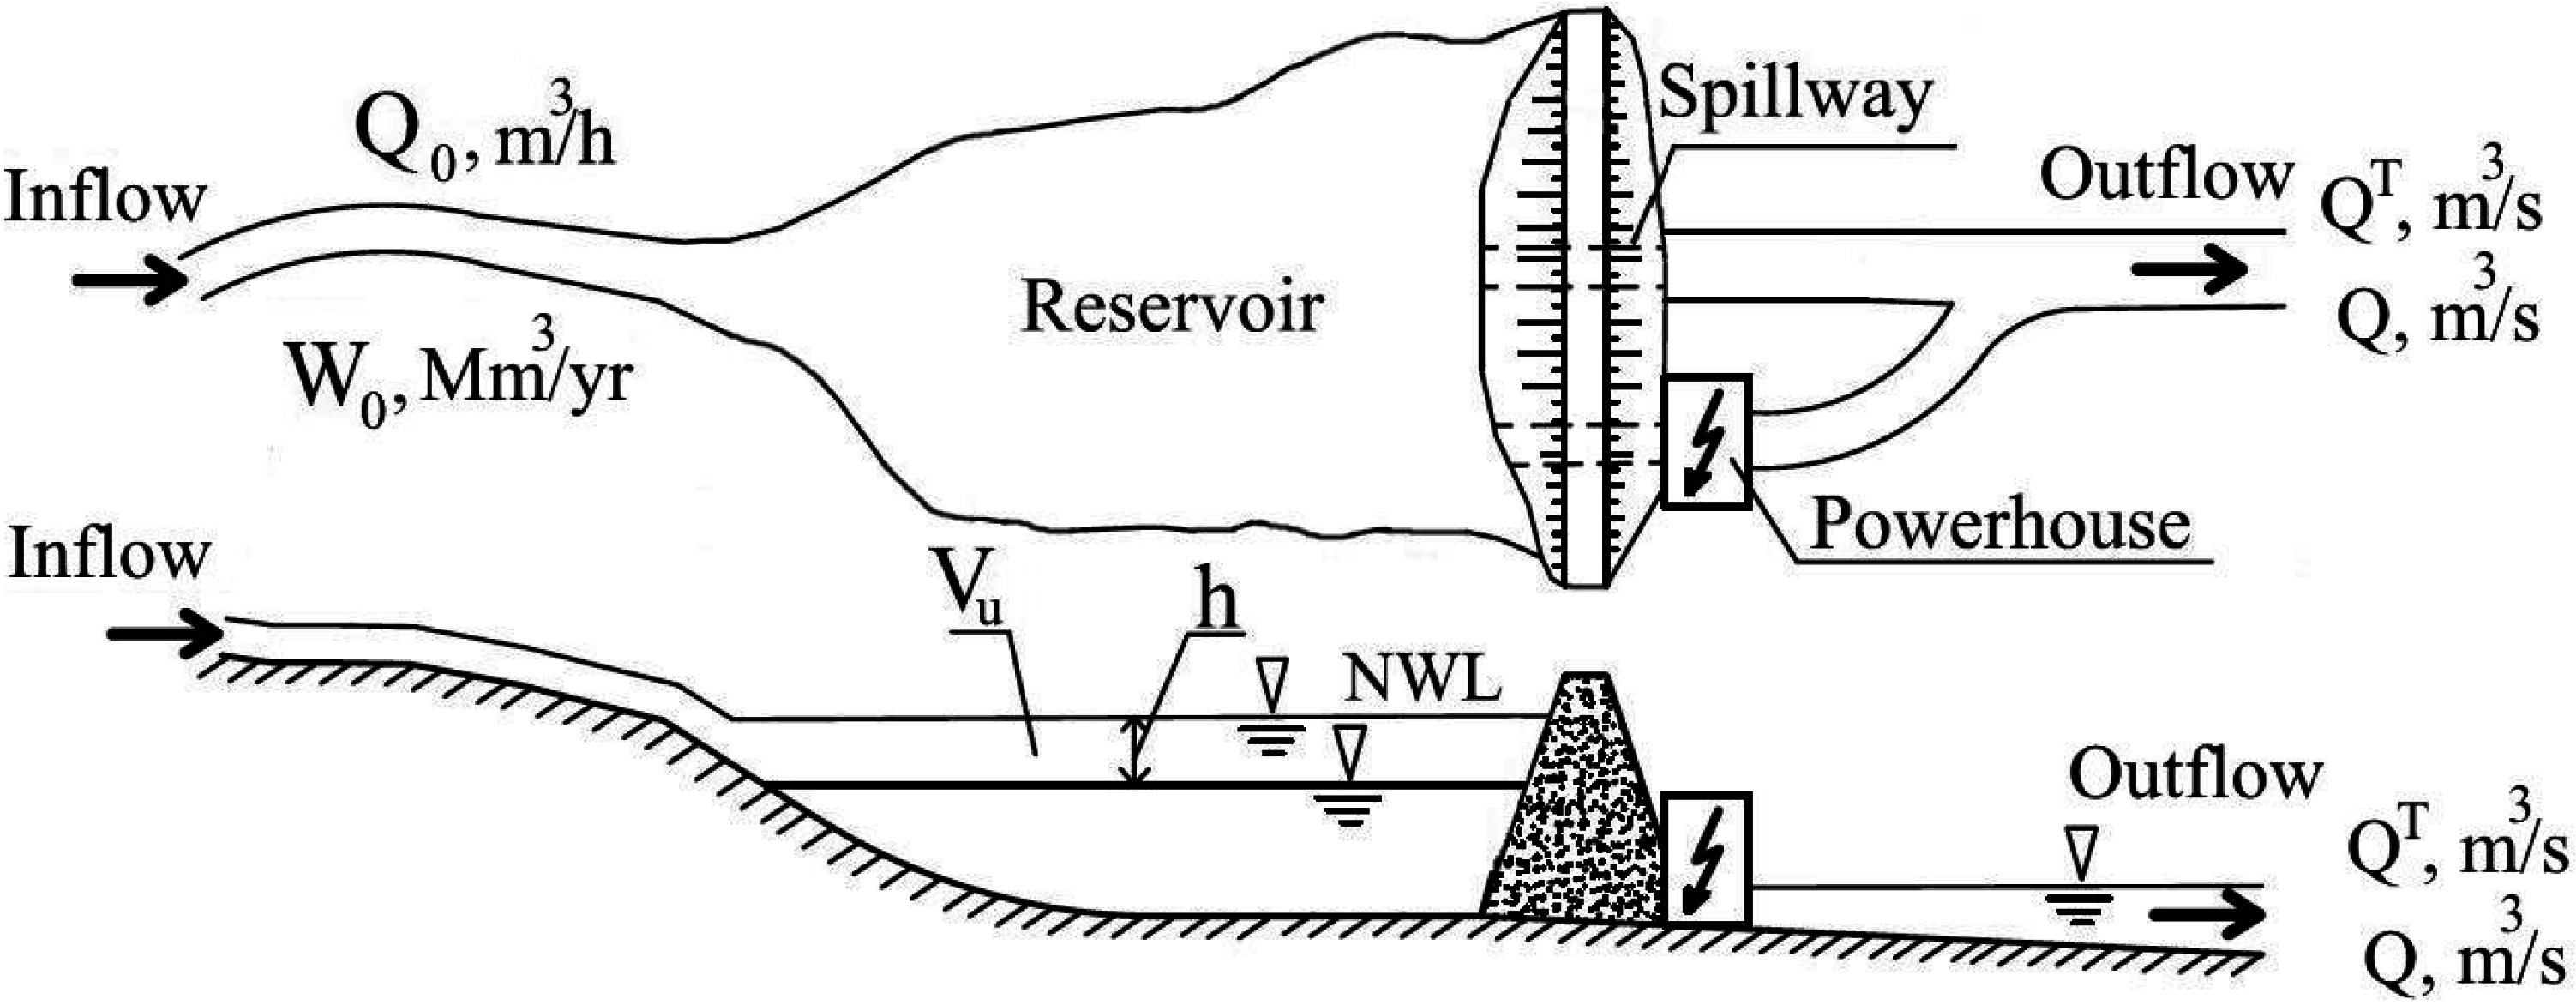 Diagram Inside Dam